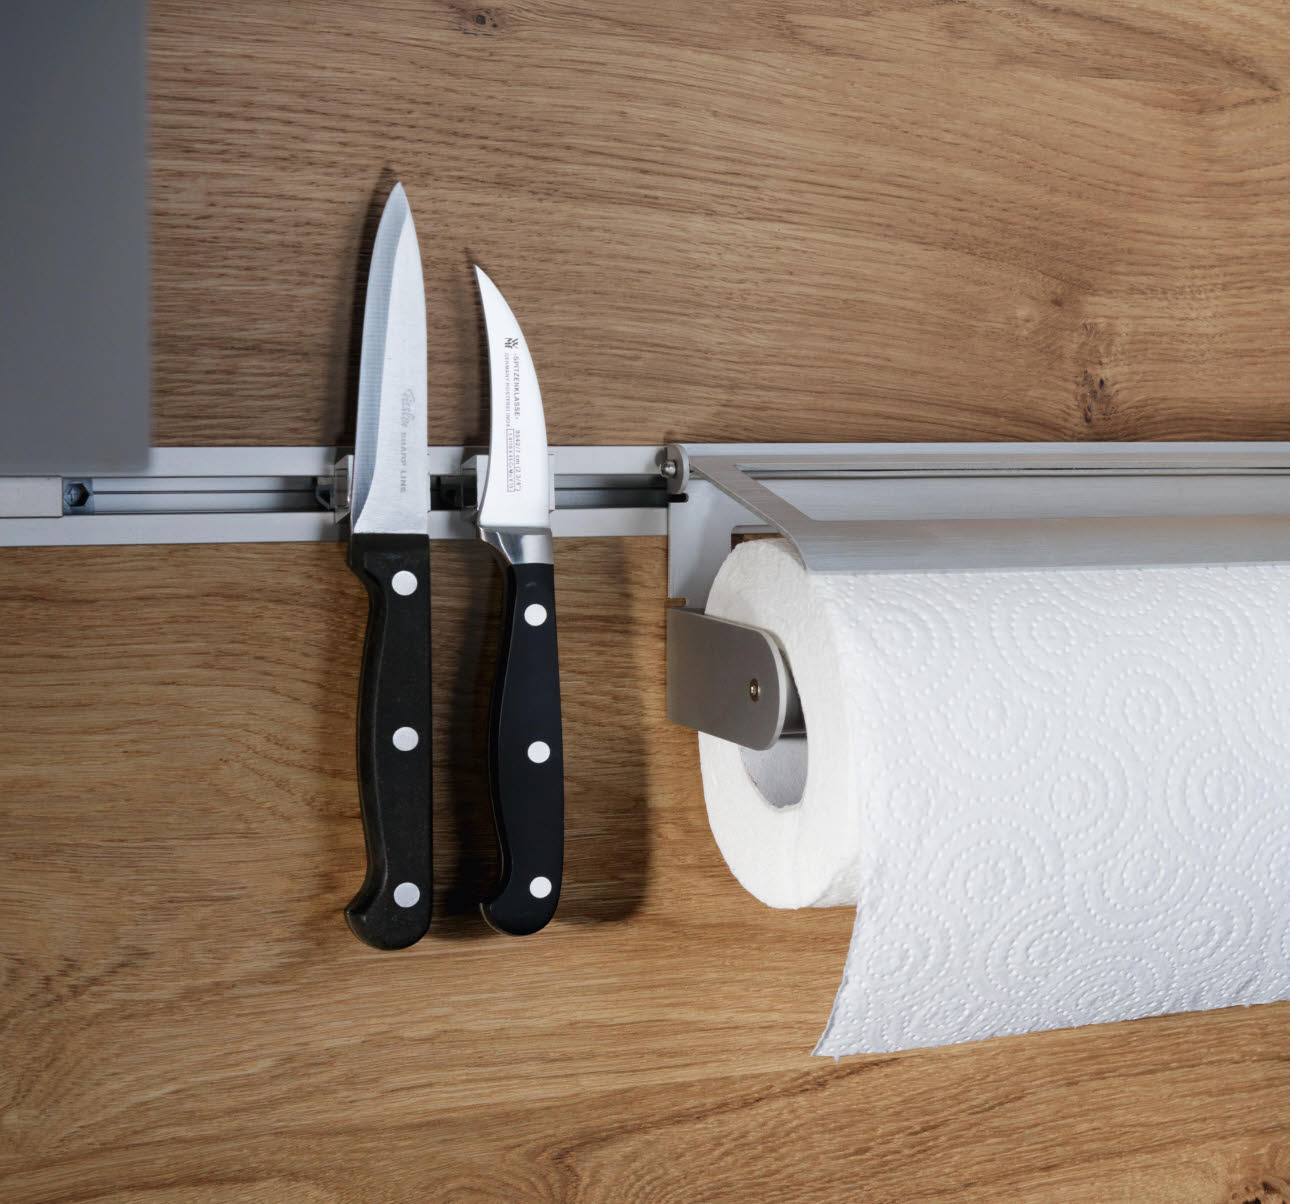 Magnetic bar and paper towel holder